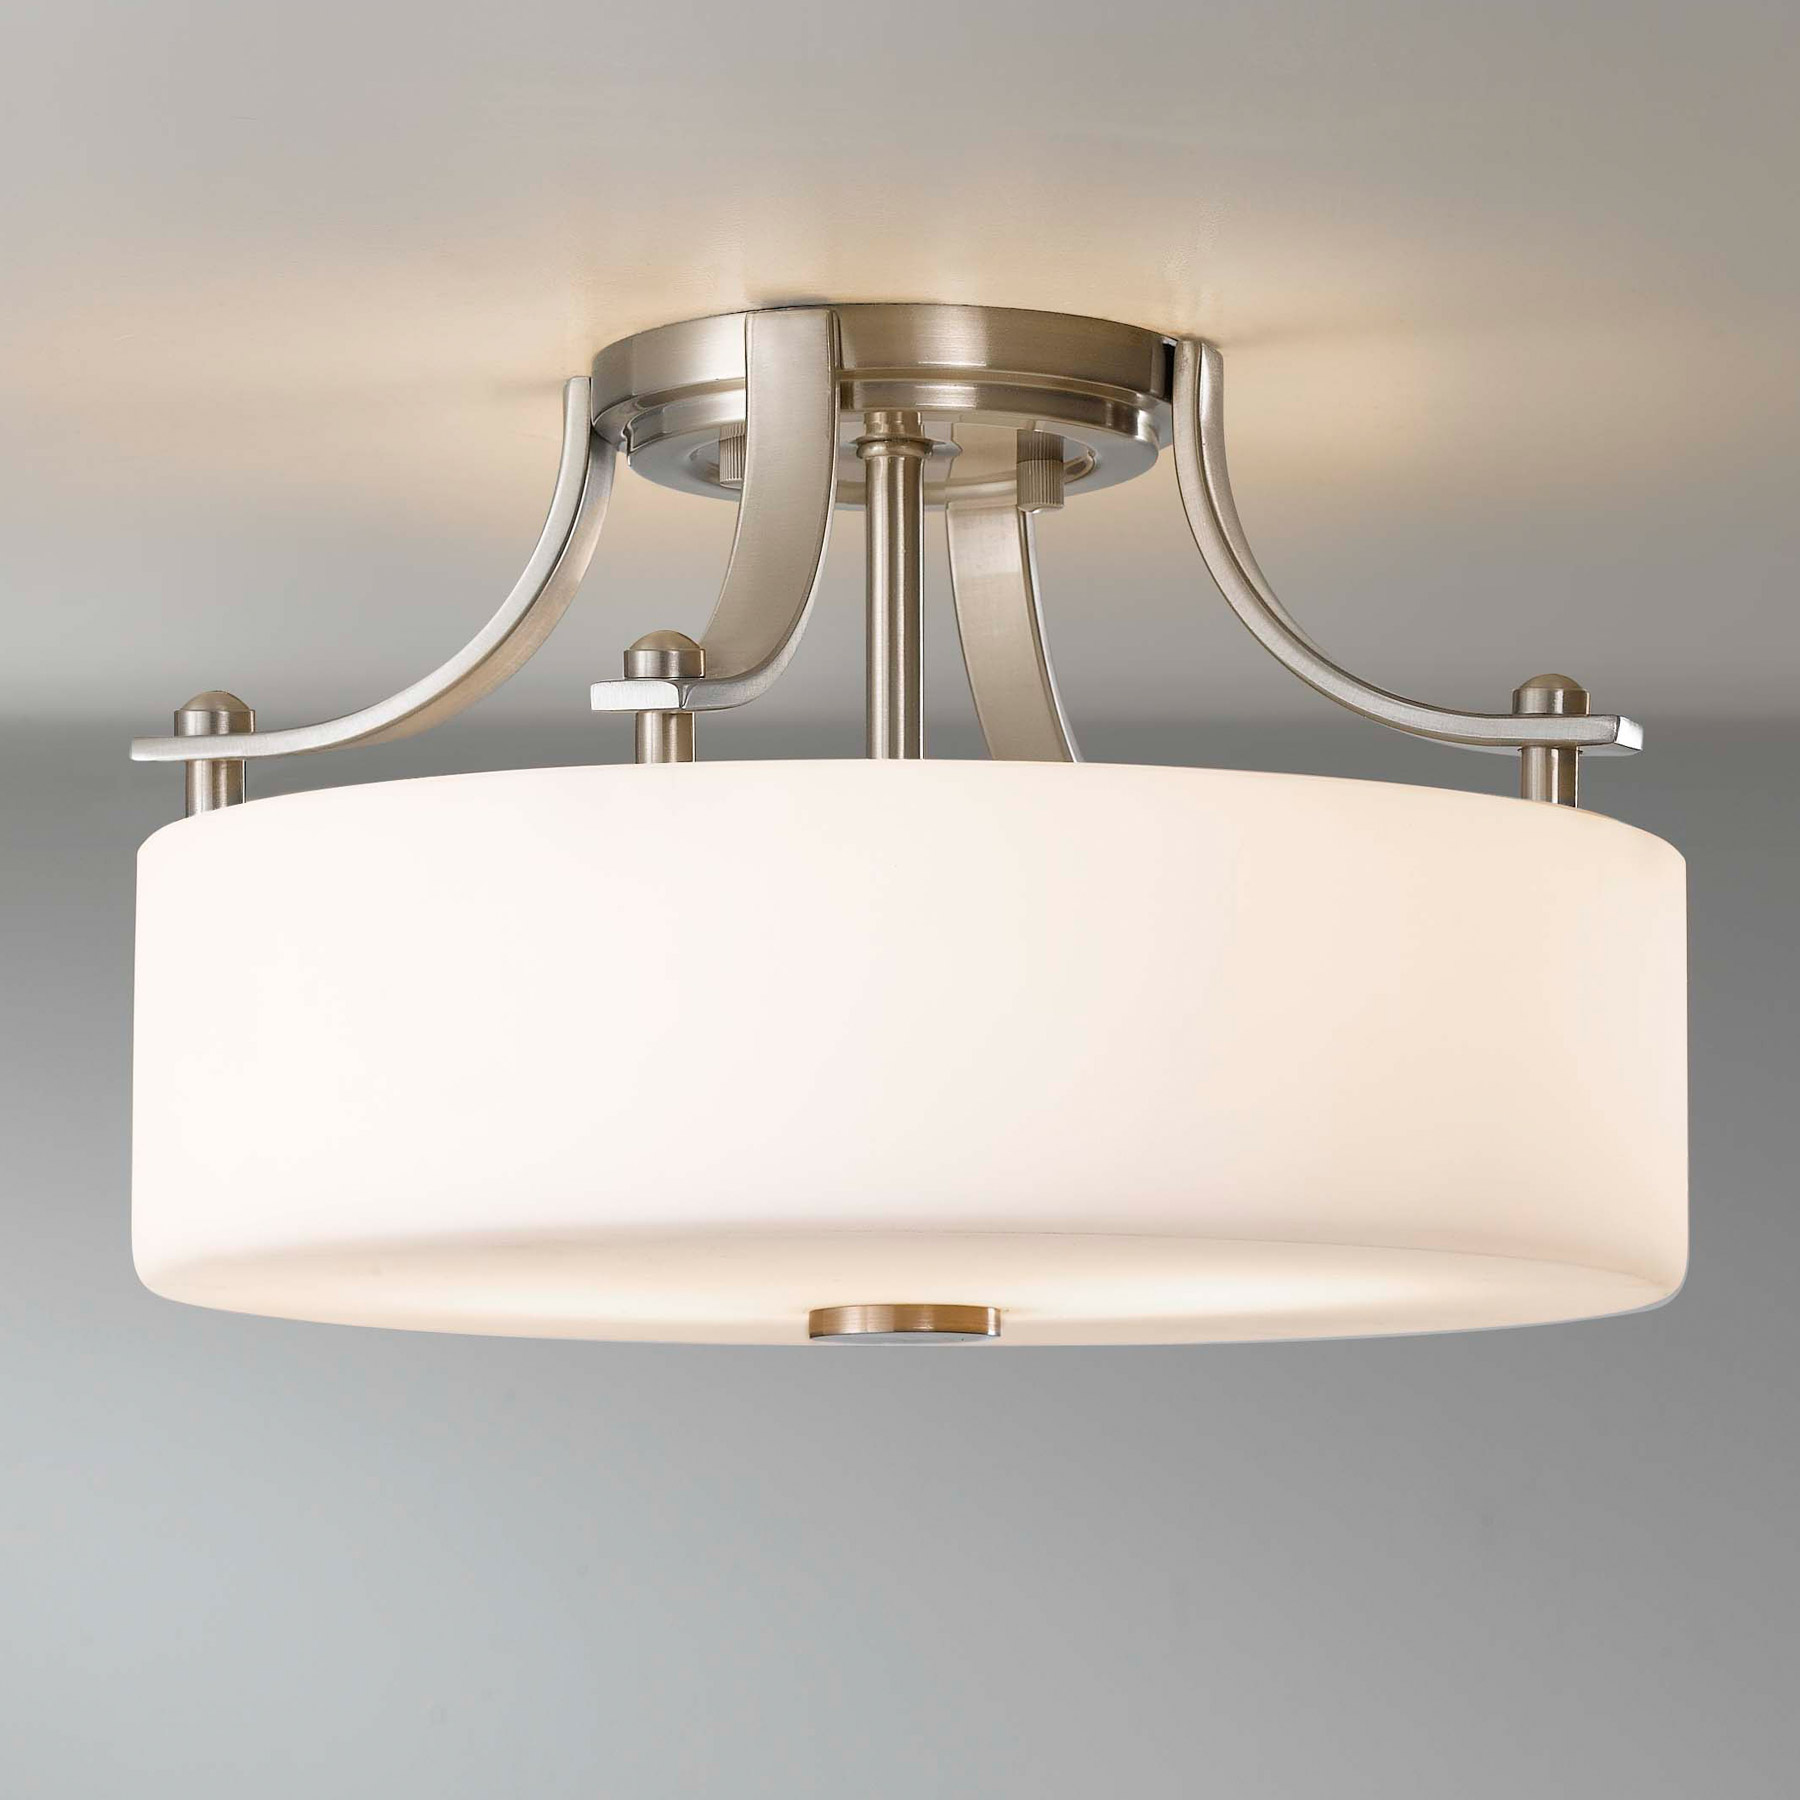 Close To Ceiling Foyer Lights : Murray feiss sf bs sunset drive semi flush ceiling fixture